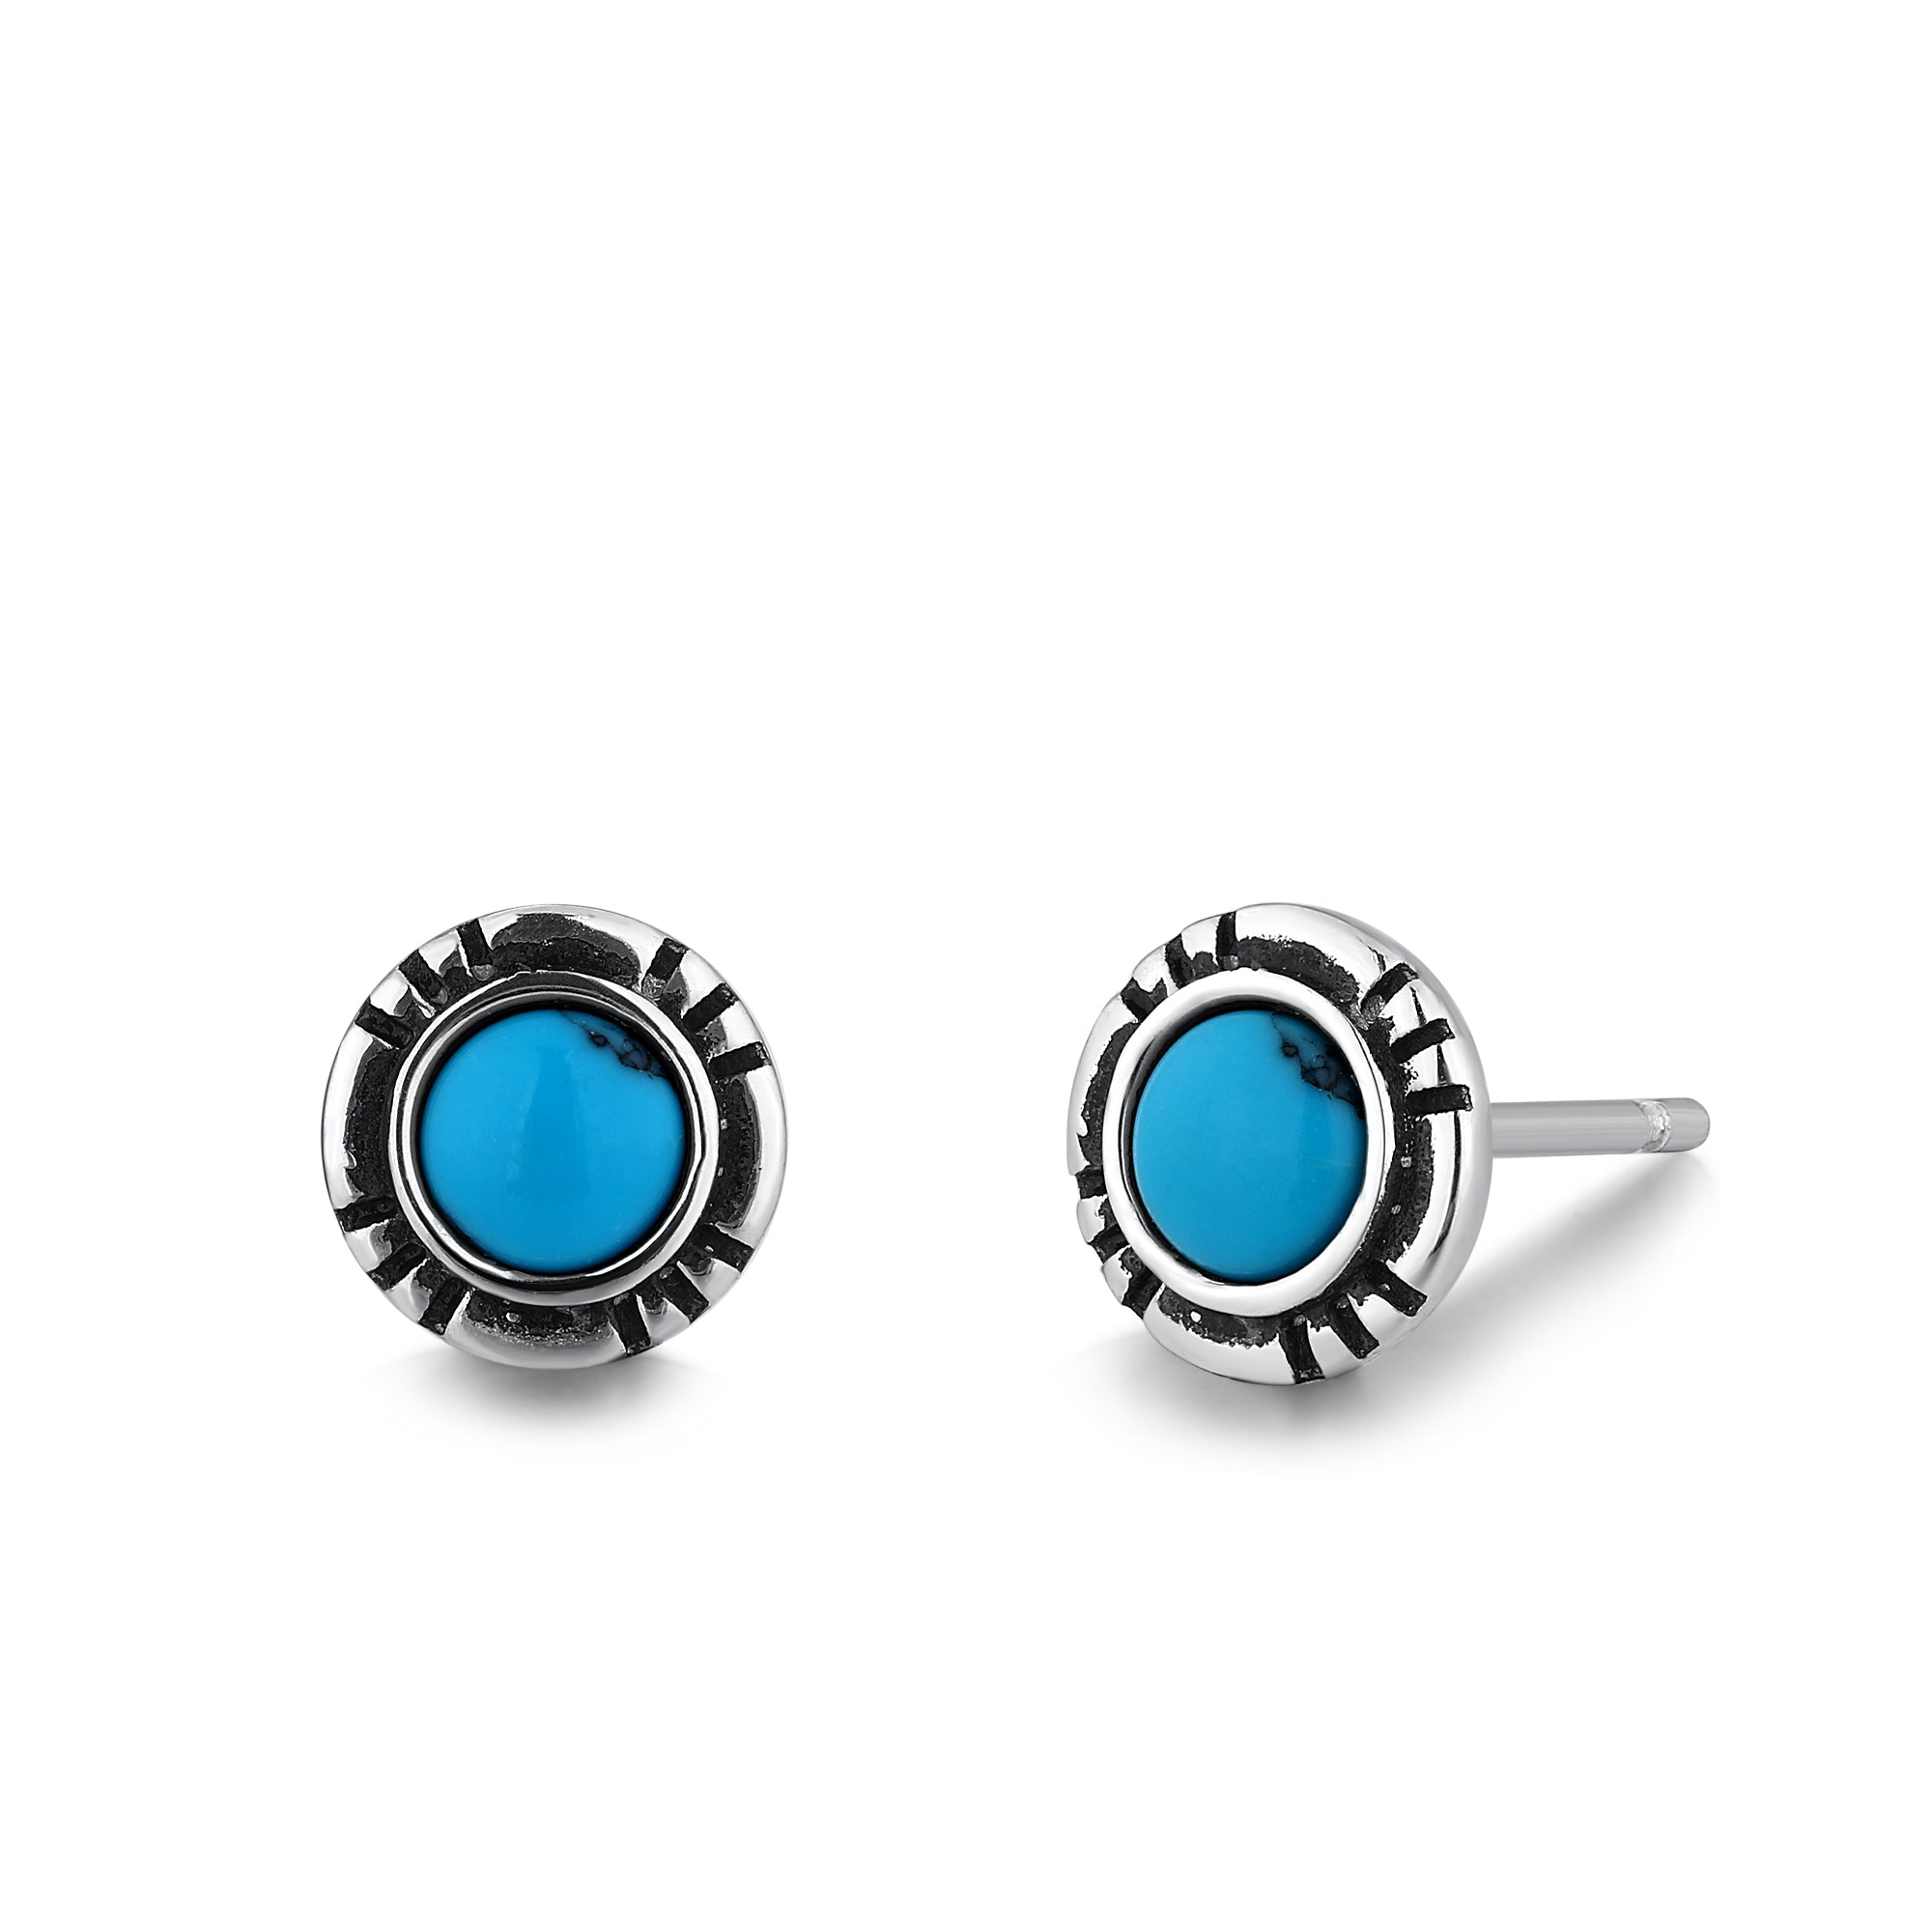 Silver Stud Earrings with Turquoise